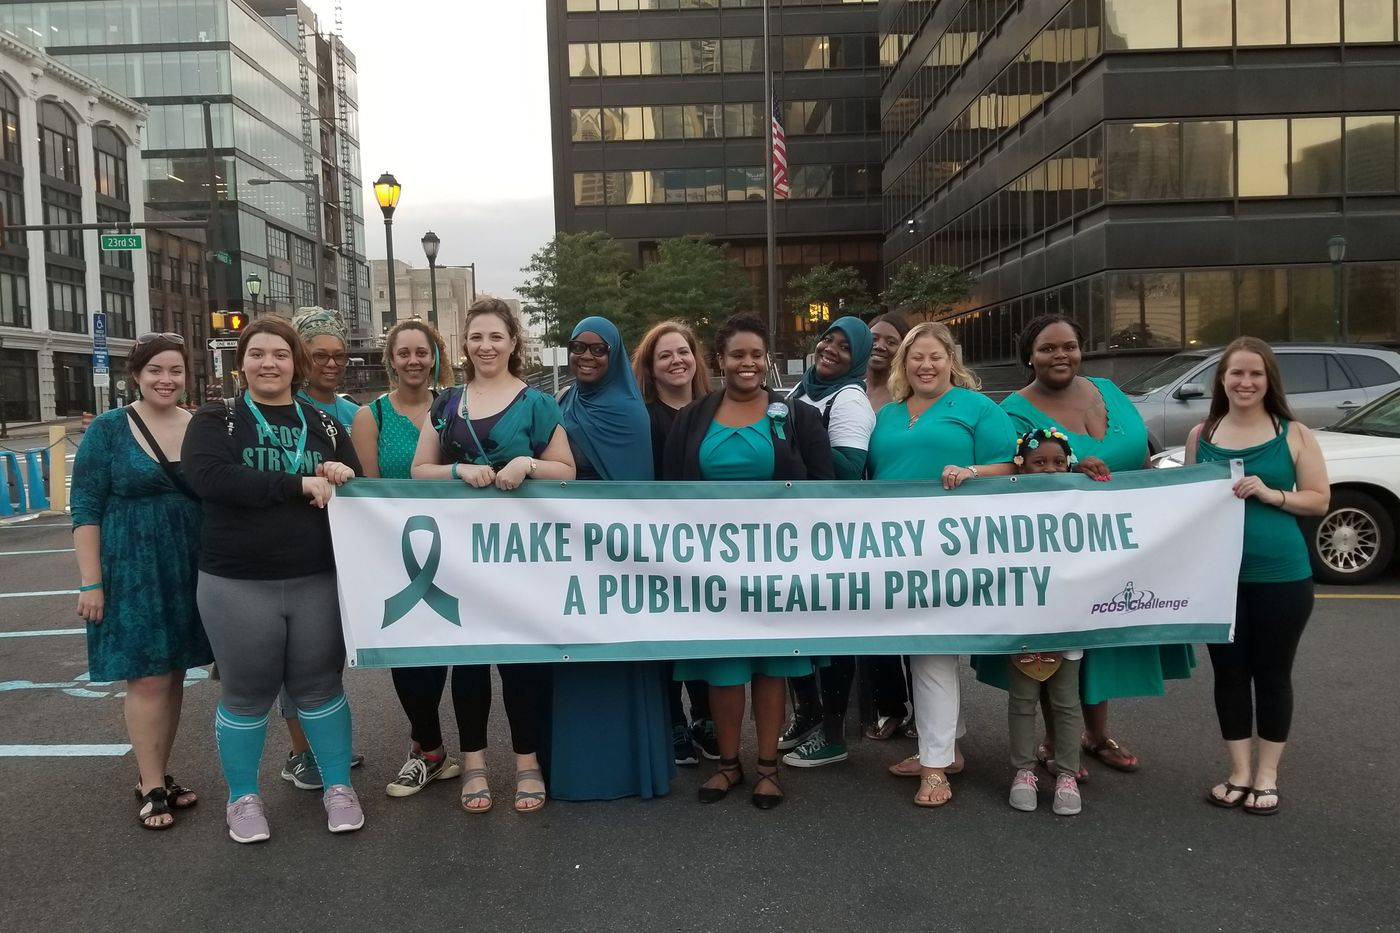 Women fight to win attention for PCOS, a major cause of infertility and other serious health issues